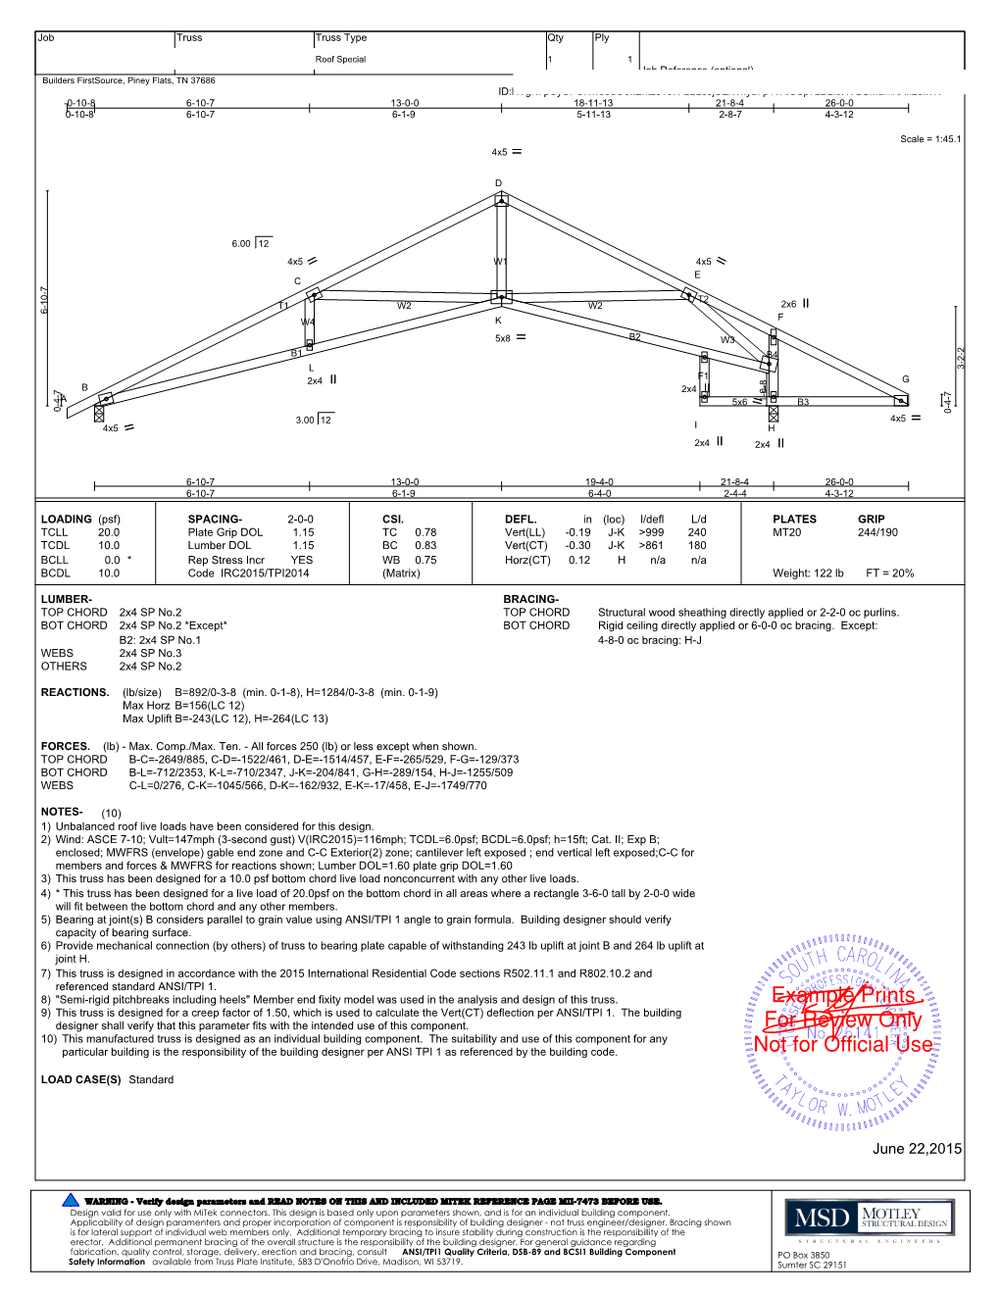 Seals Example Page 006.png